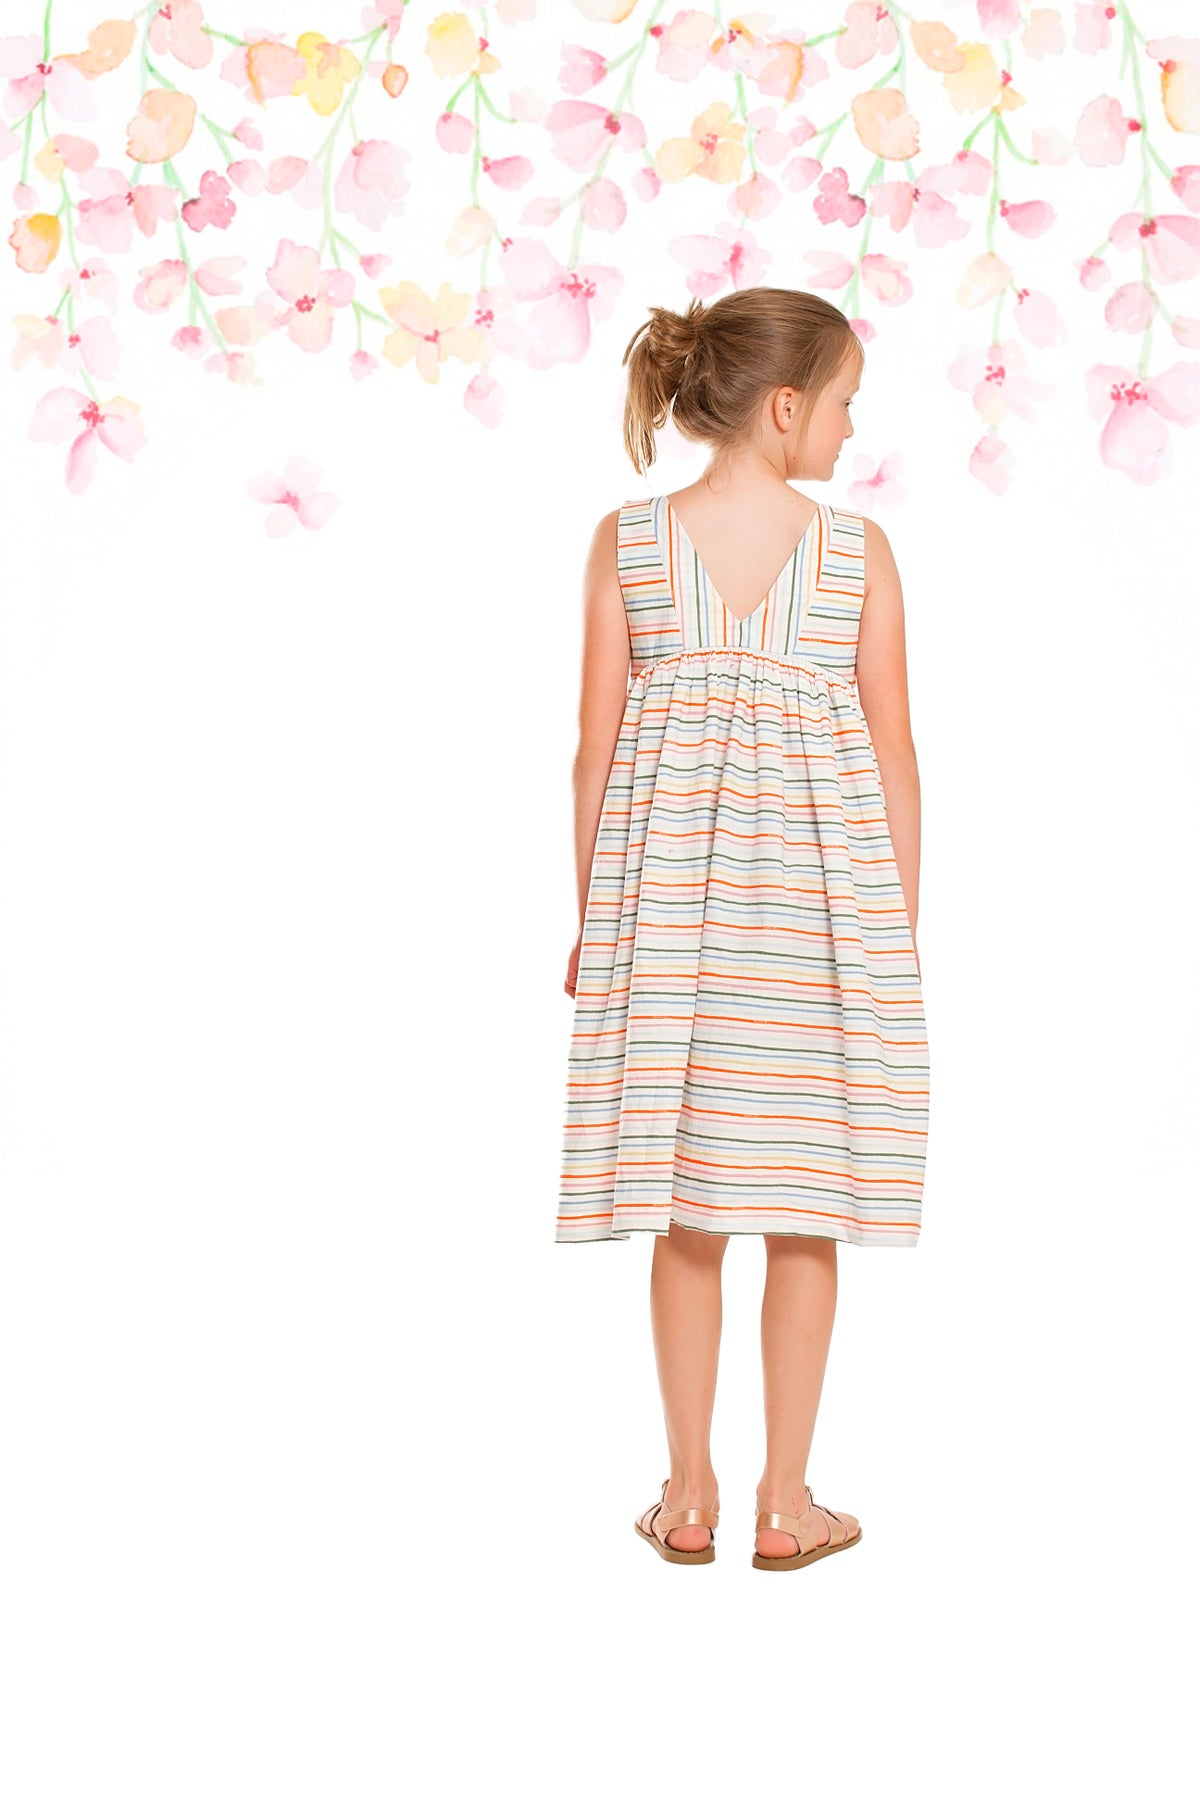 Image of The Strawberry Baby Doll Top&Dress